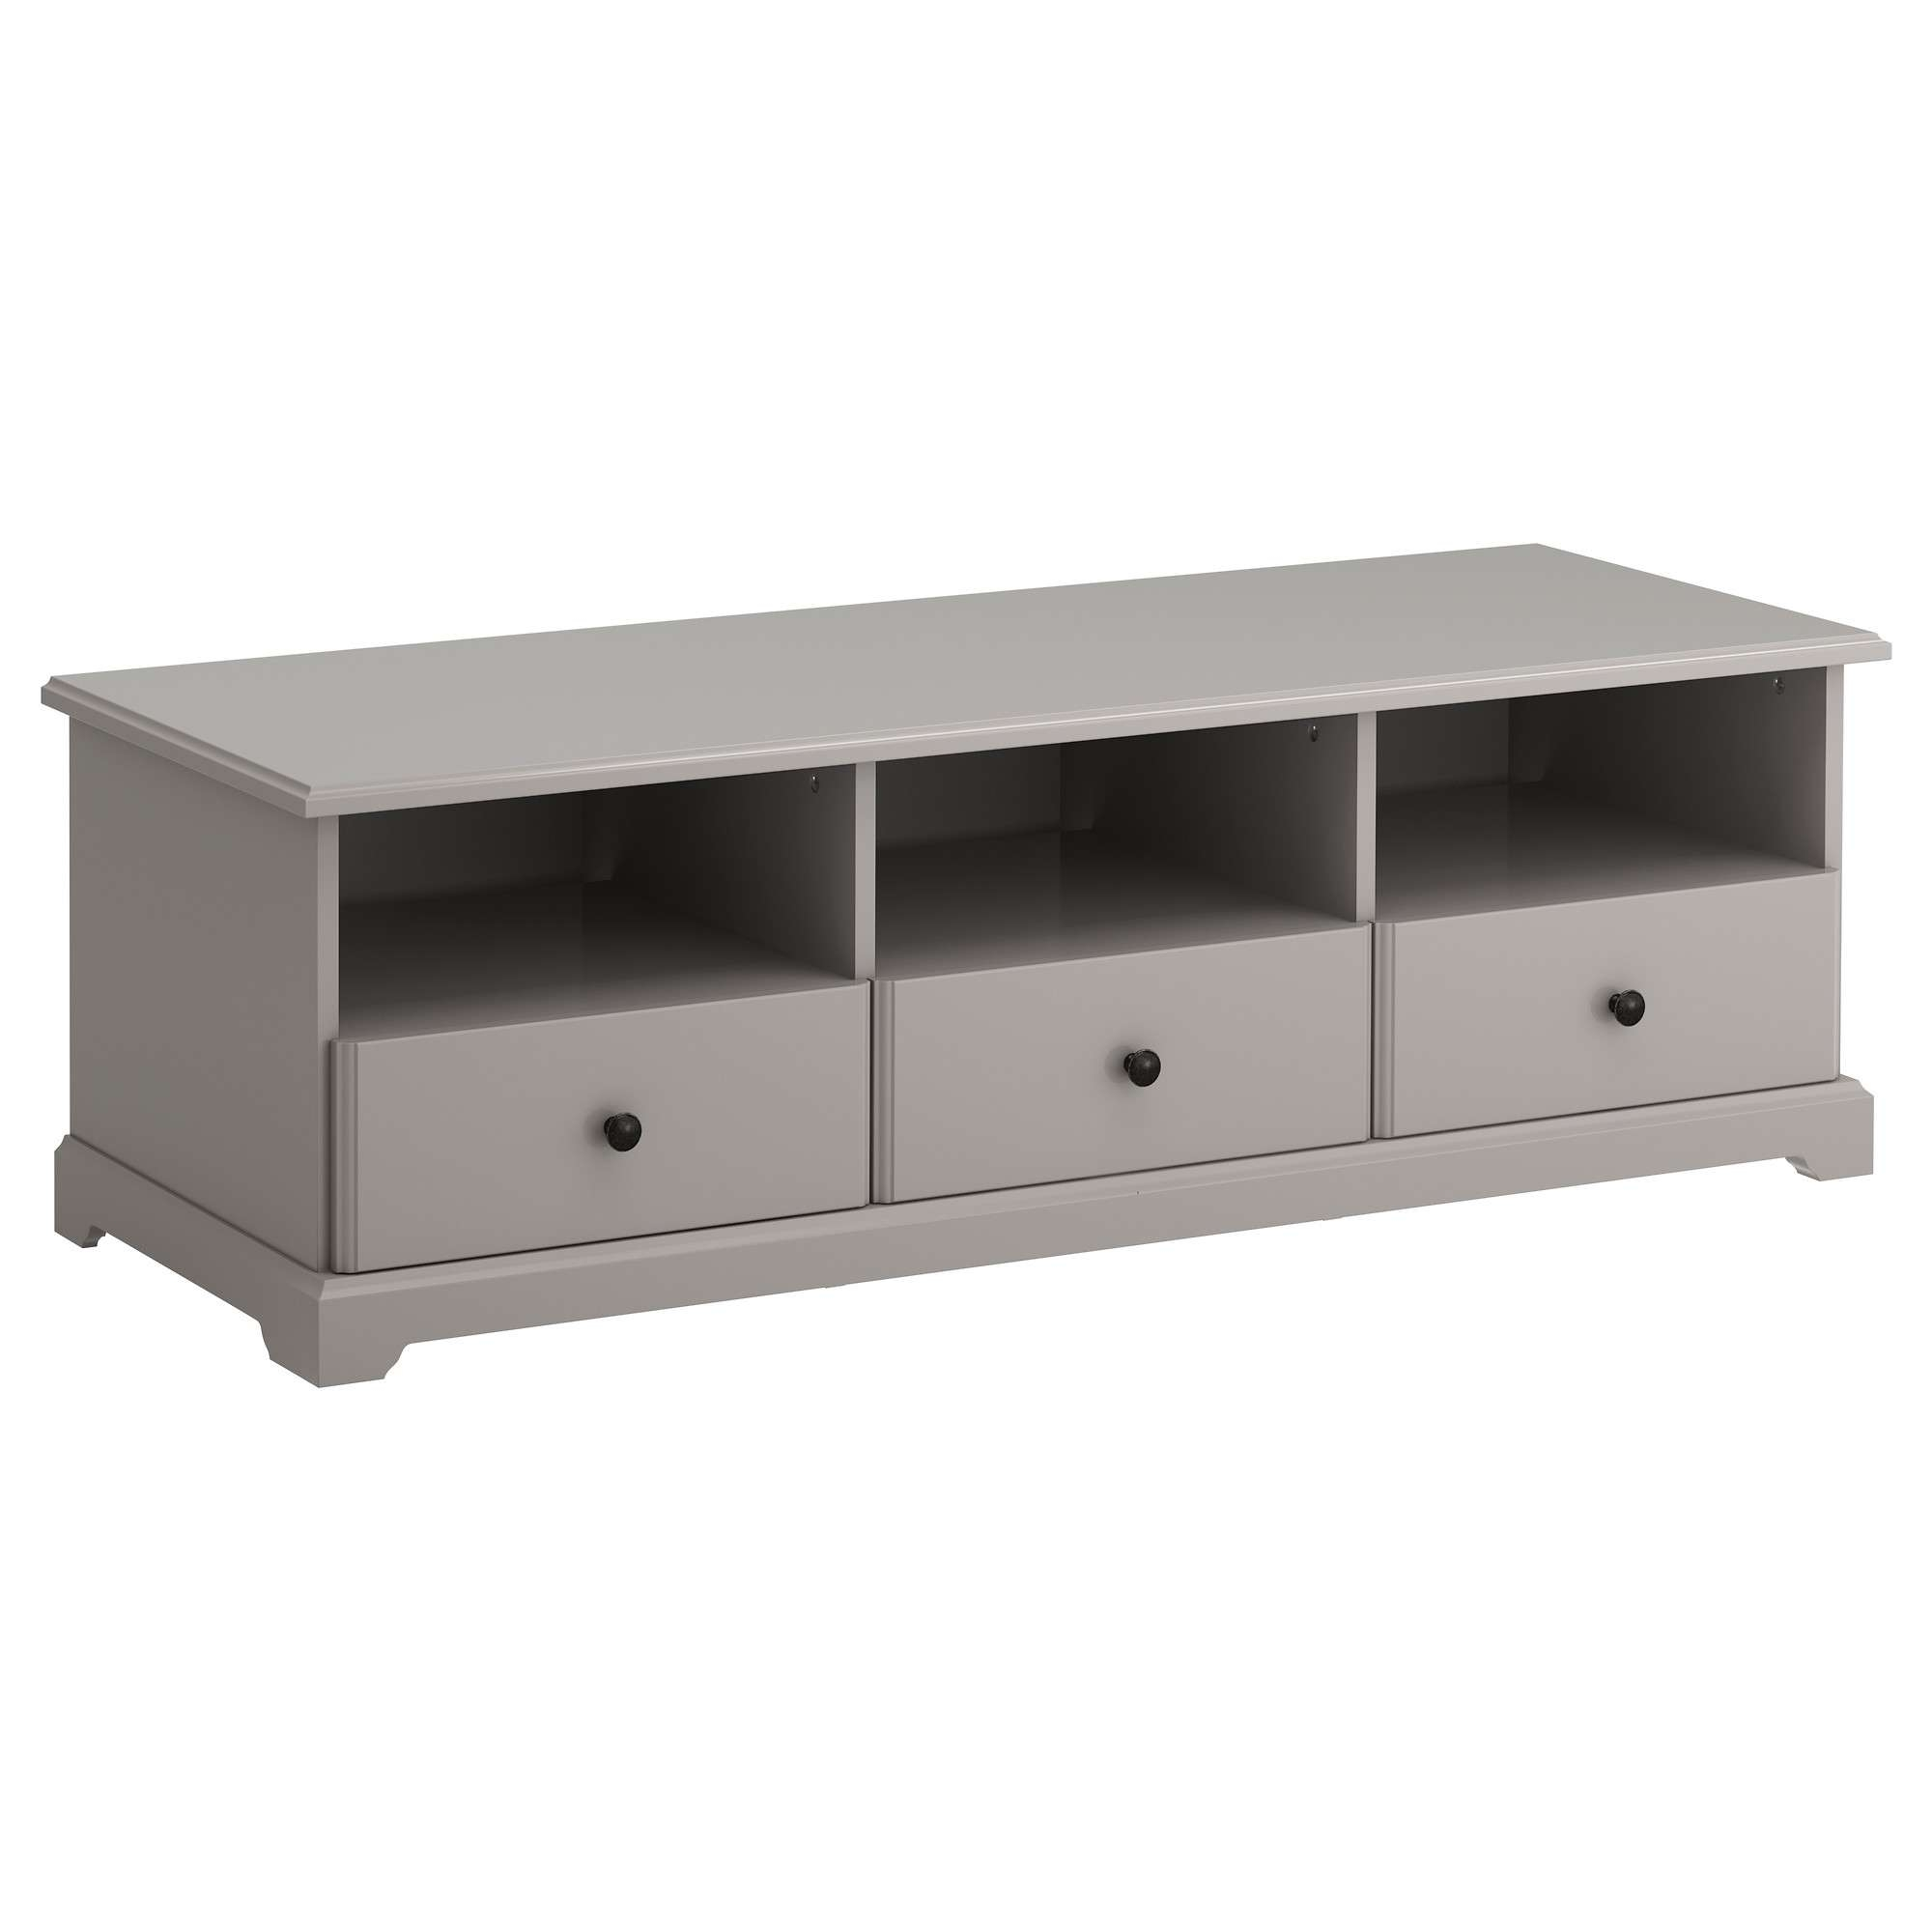 Liatorp Tv Bench – Gray – Ikea For Tv Cabinets With Drawers (View 12 of 20)